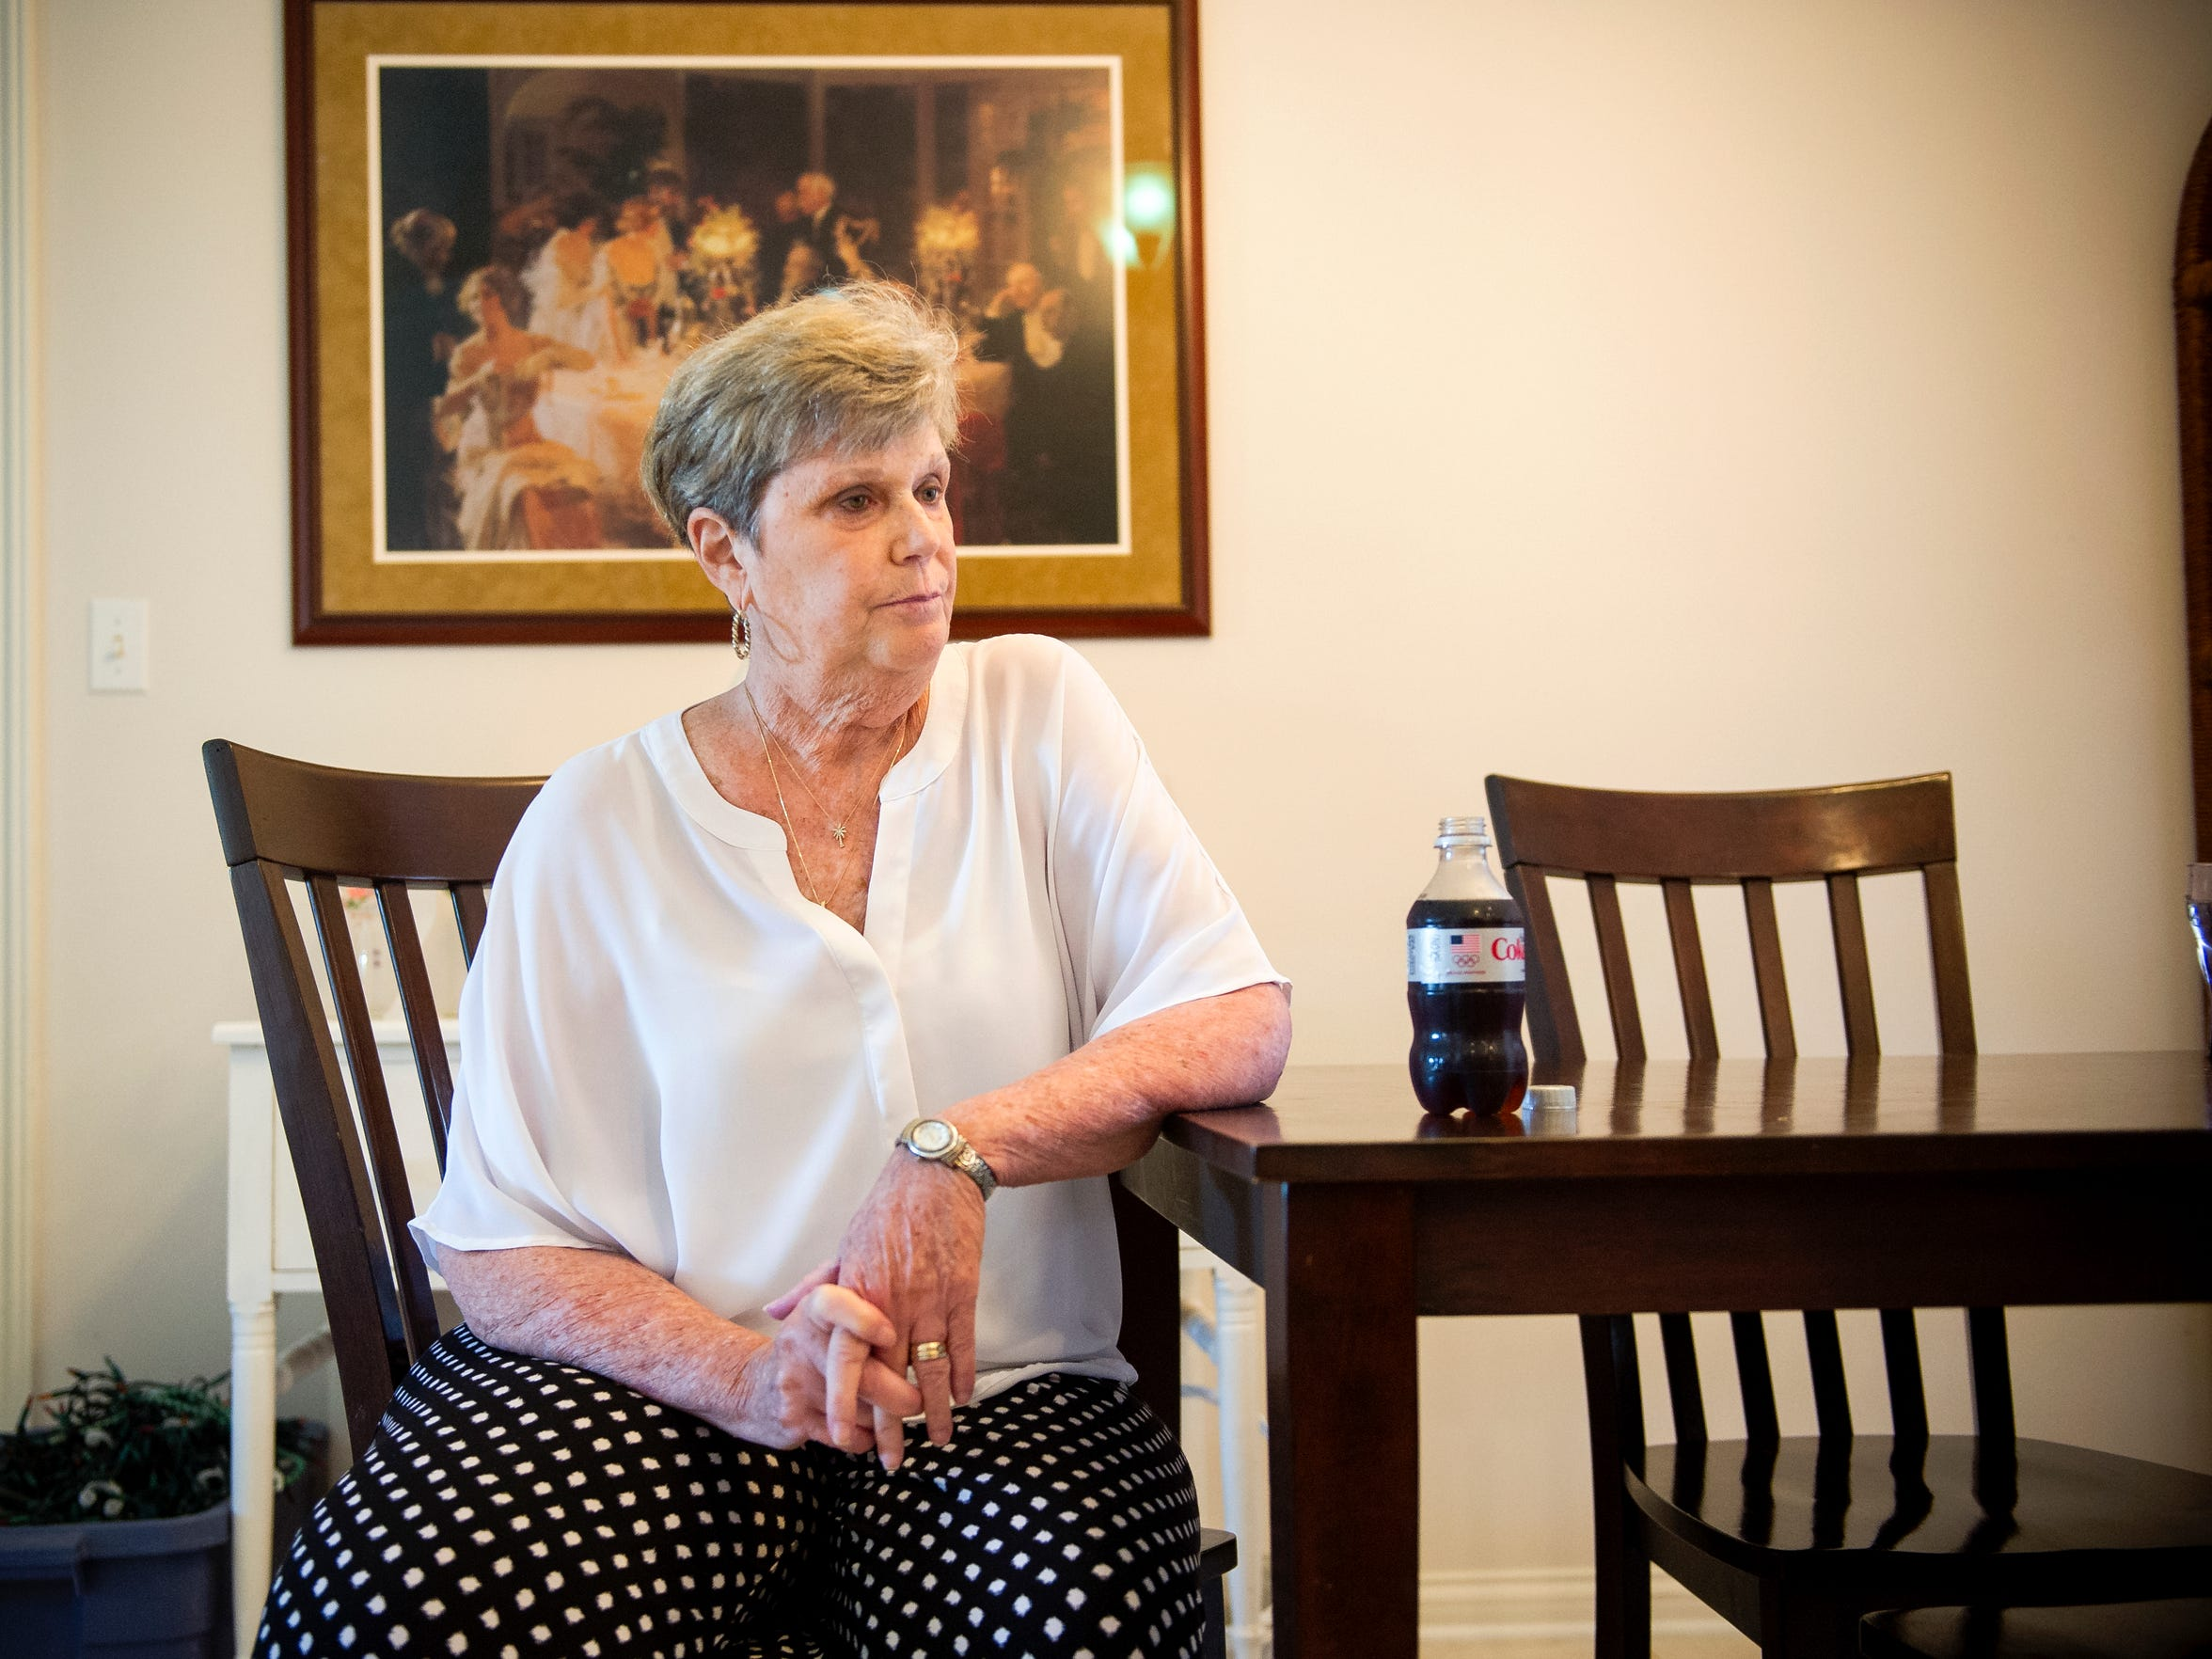 Carole Morton, of Evansville sits at her dining room table while waiting for her husband, John's nurse to arrive to administer his weekly infusion of Prolastin-C, a drug which treats alpha-1 antitrypsin deficiency, Thursday Aug. 25, 2016. Both Carole and John have been living with alpha-1 antitrypsin deficiency, a genetic disorder that can lead to lung and liver diseases. In June Carole found out she has cancer that has spread to her lungs, she's been told she has anywhere from 3-14 months to live.